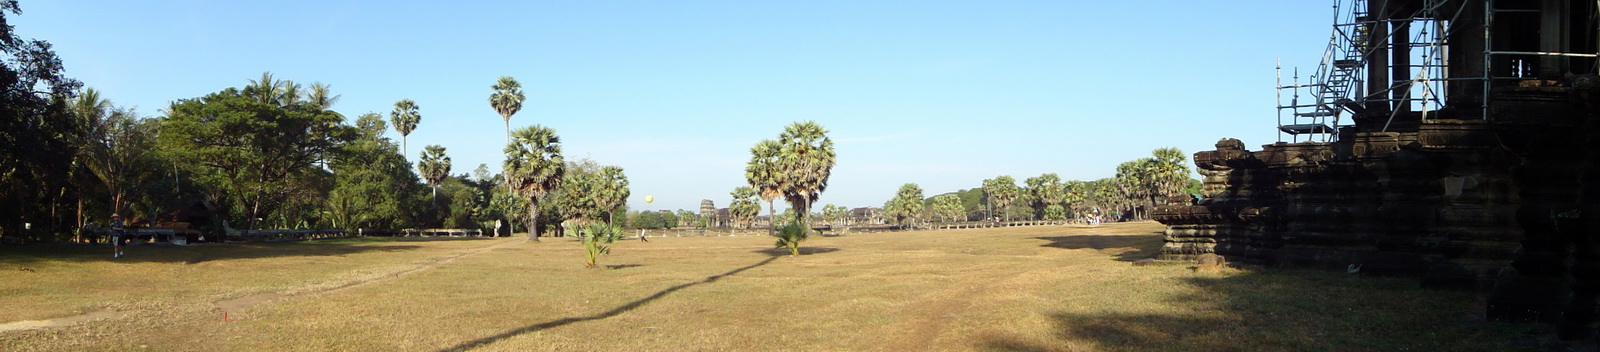 Angkor Wat panoramic view S side looking west Angkor Siem Reap 01